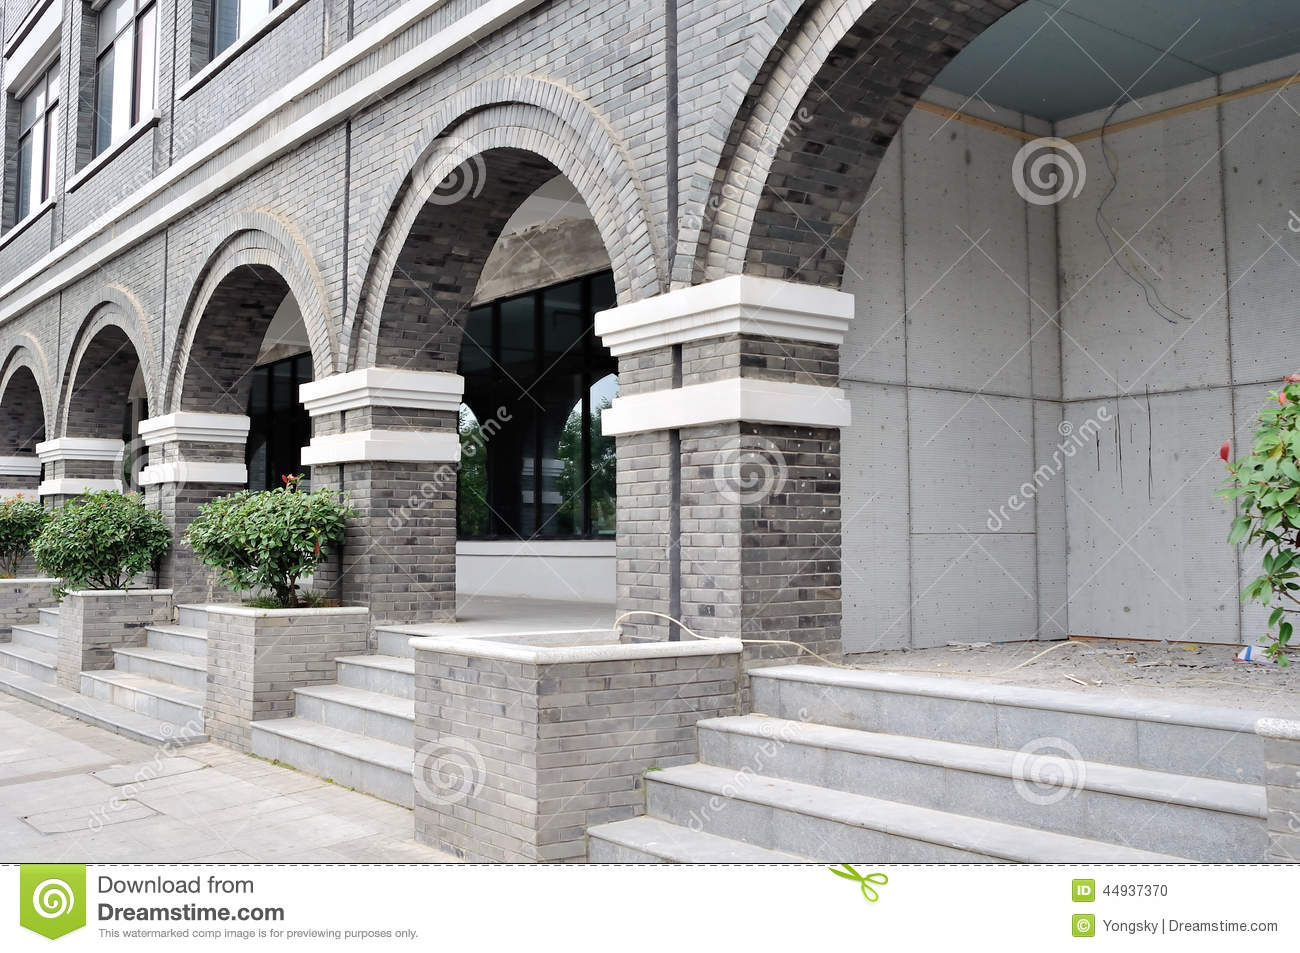 Nanjing historical sites stock photo. image of ming residential